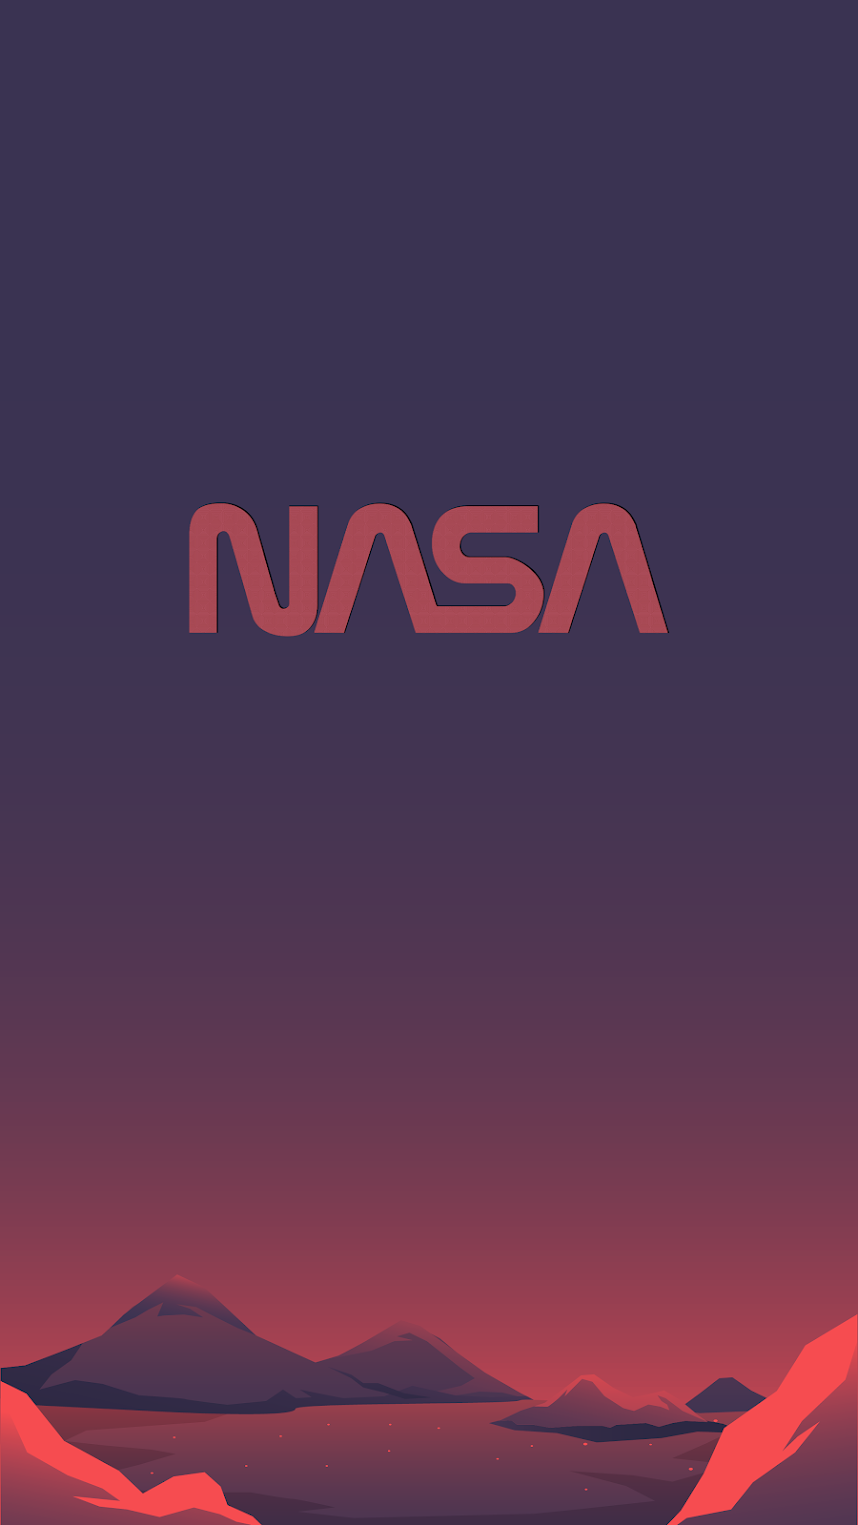 Nasa new logo wallpaper 4k for mobile phone